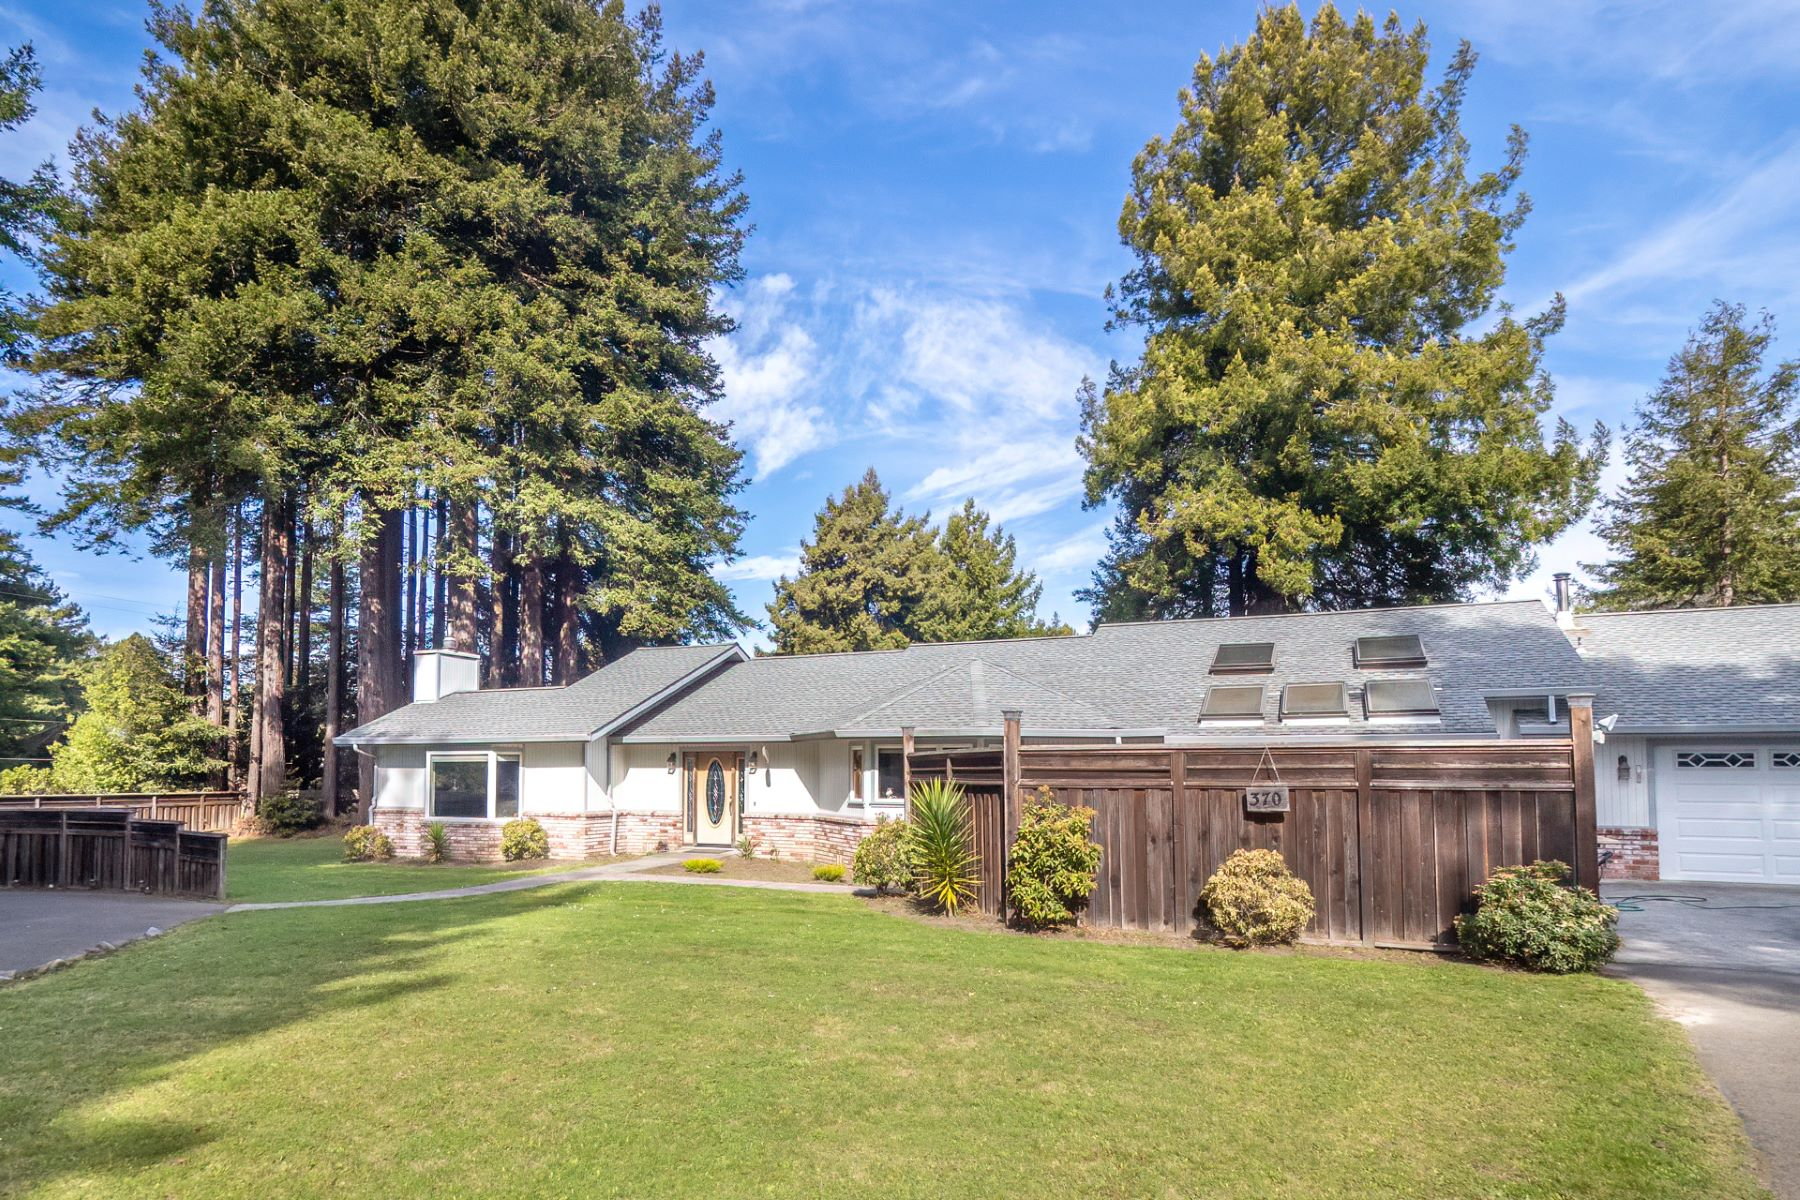 Single Family Homes for Active at Country Charmer 370 Dennison Lane Fort Bragg, California 95437 United States